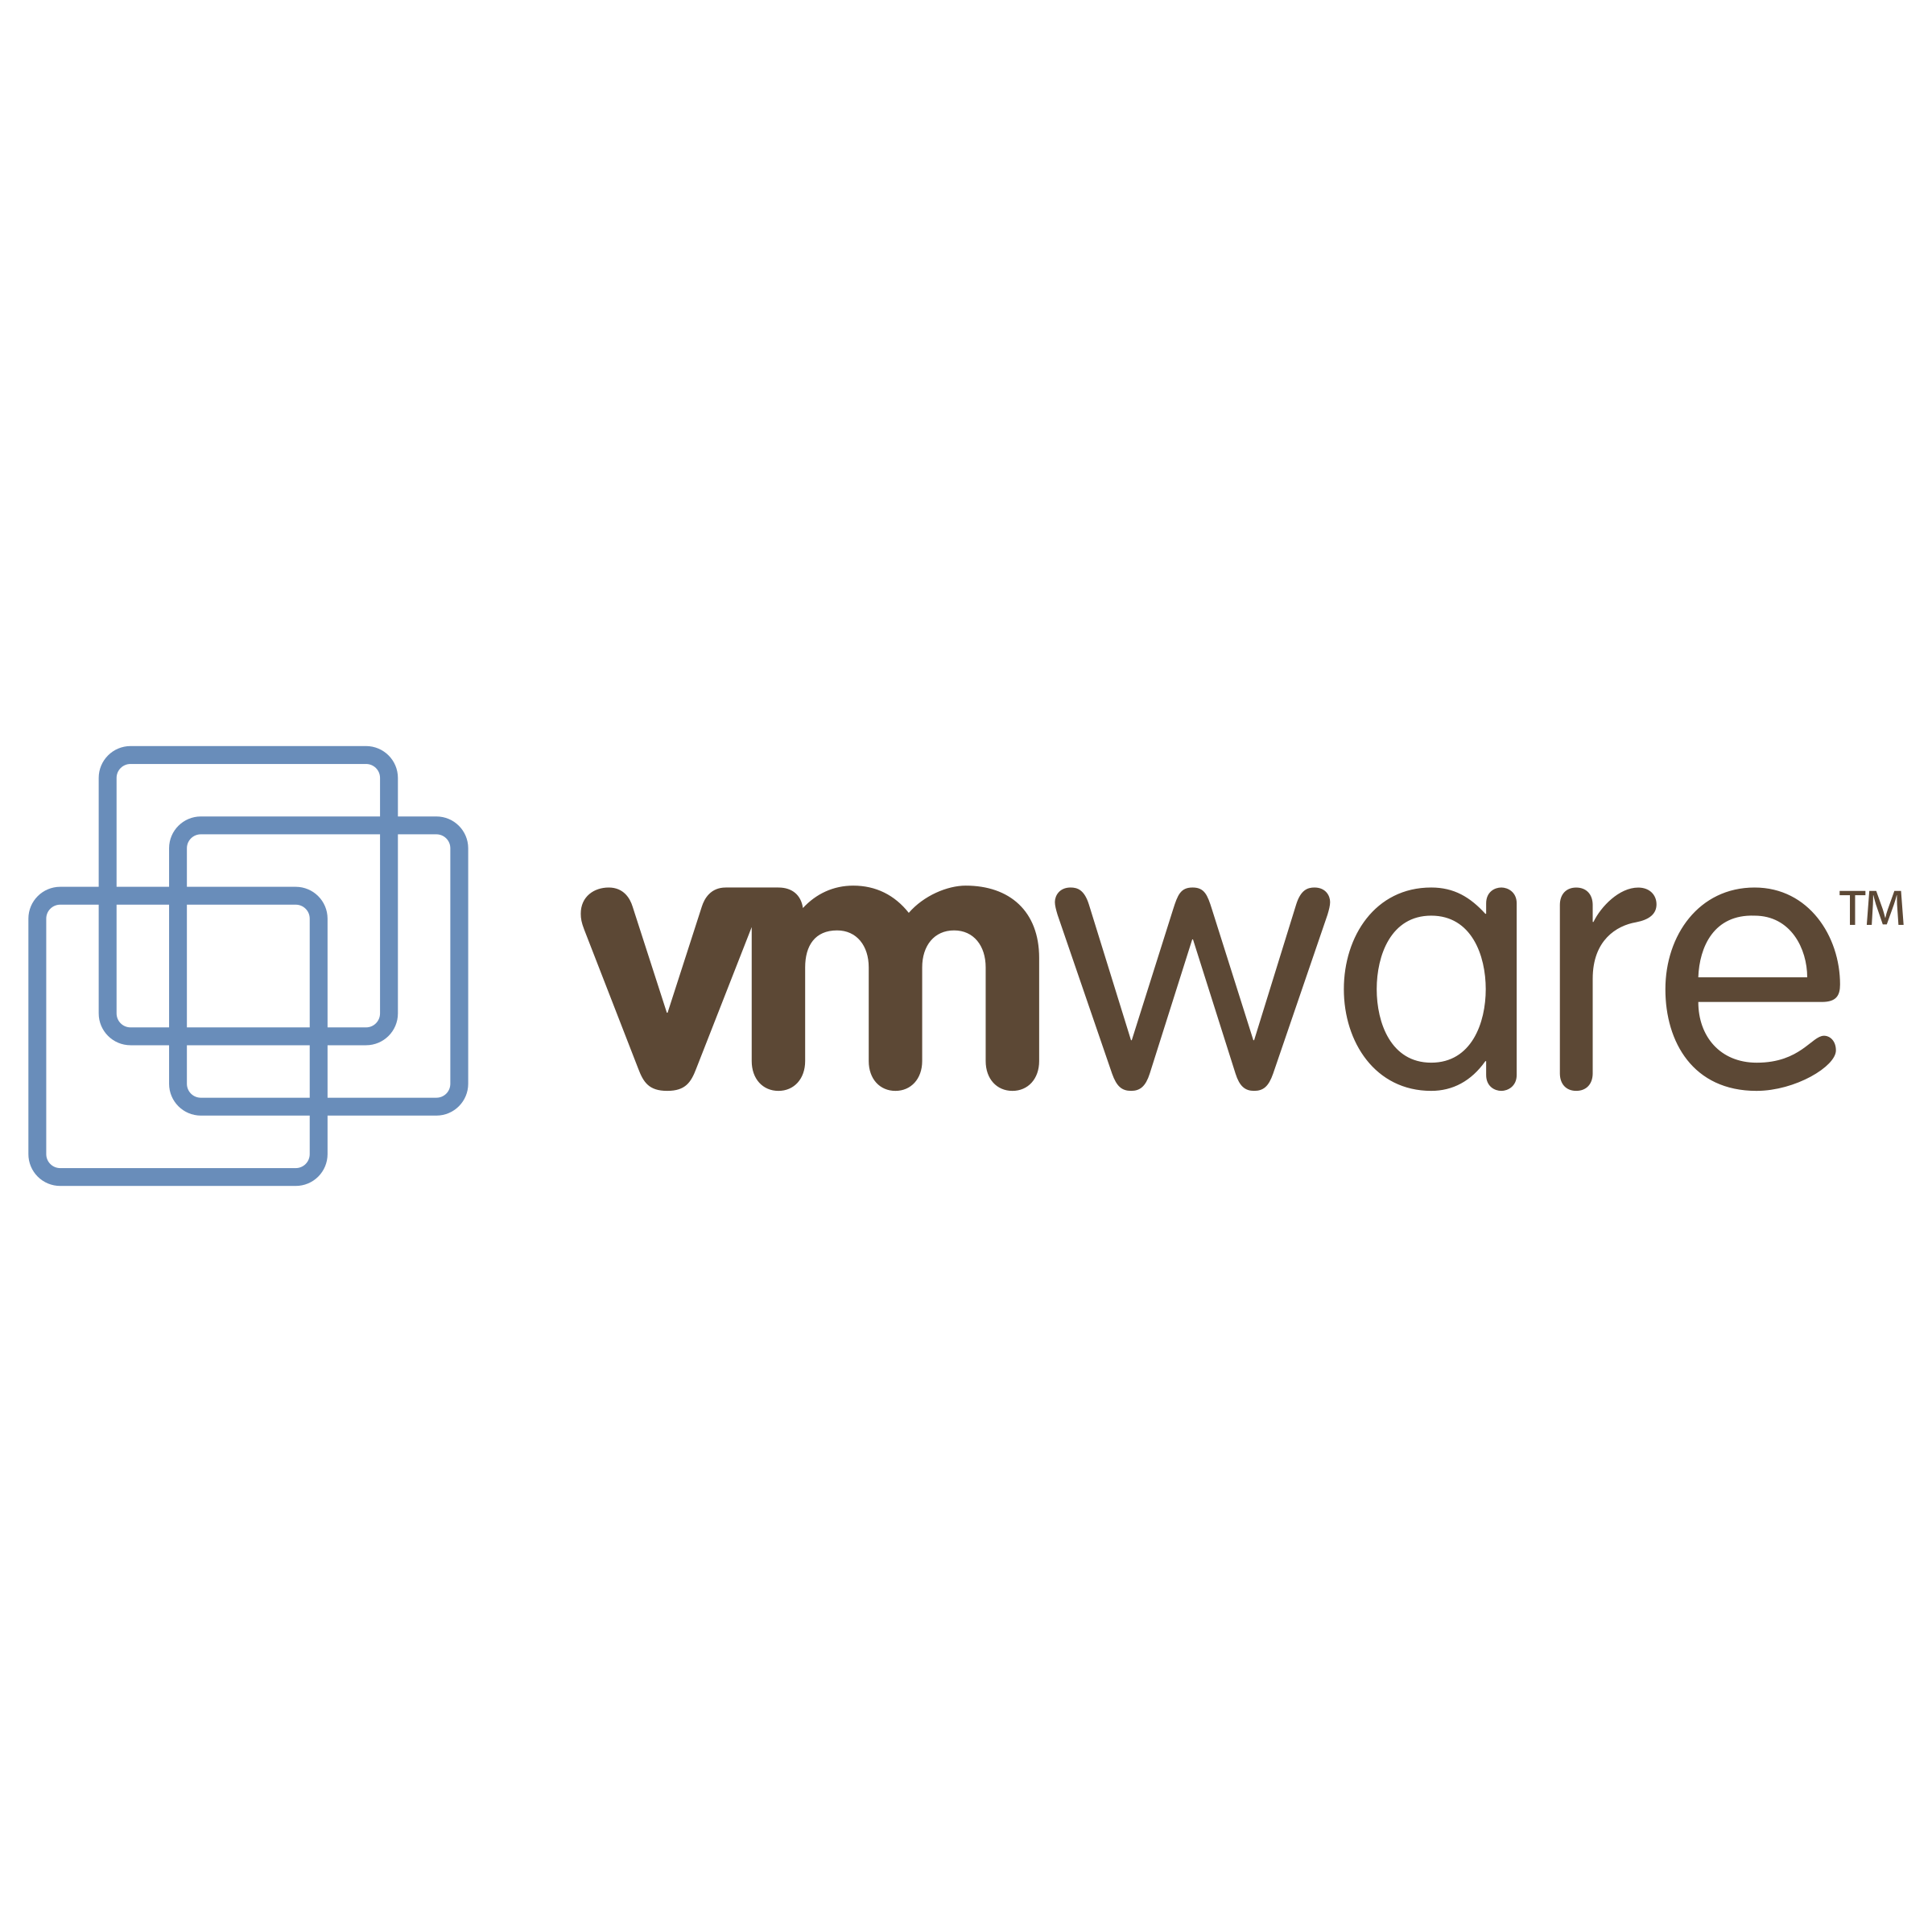 VMware Logo PNG Transparent & SVG Vector.